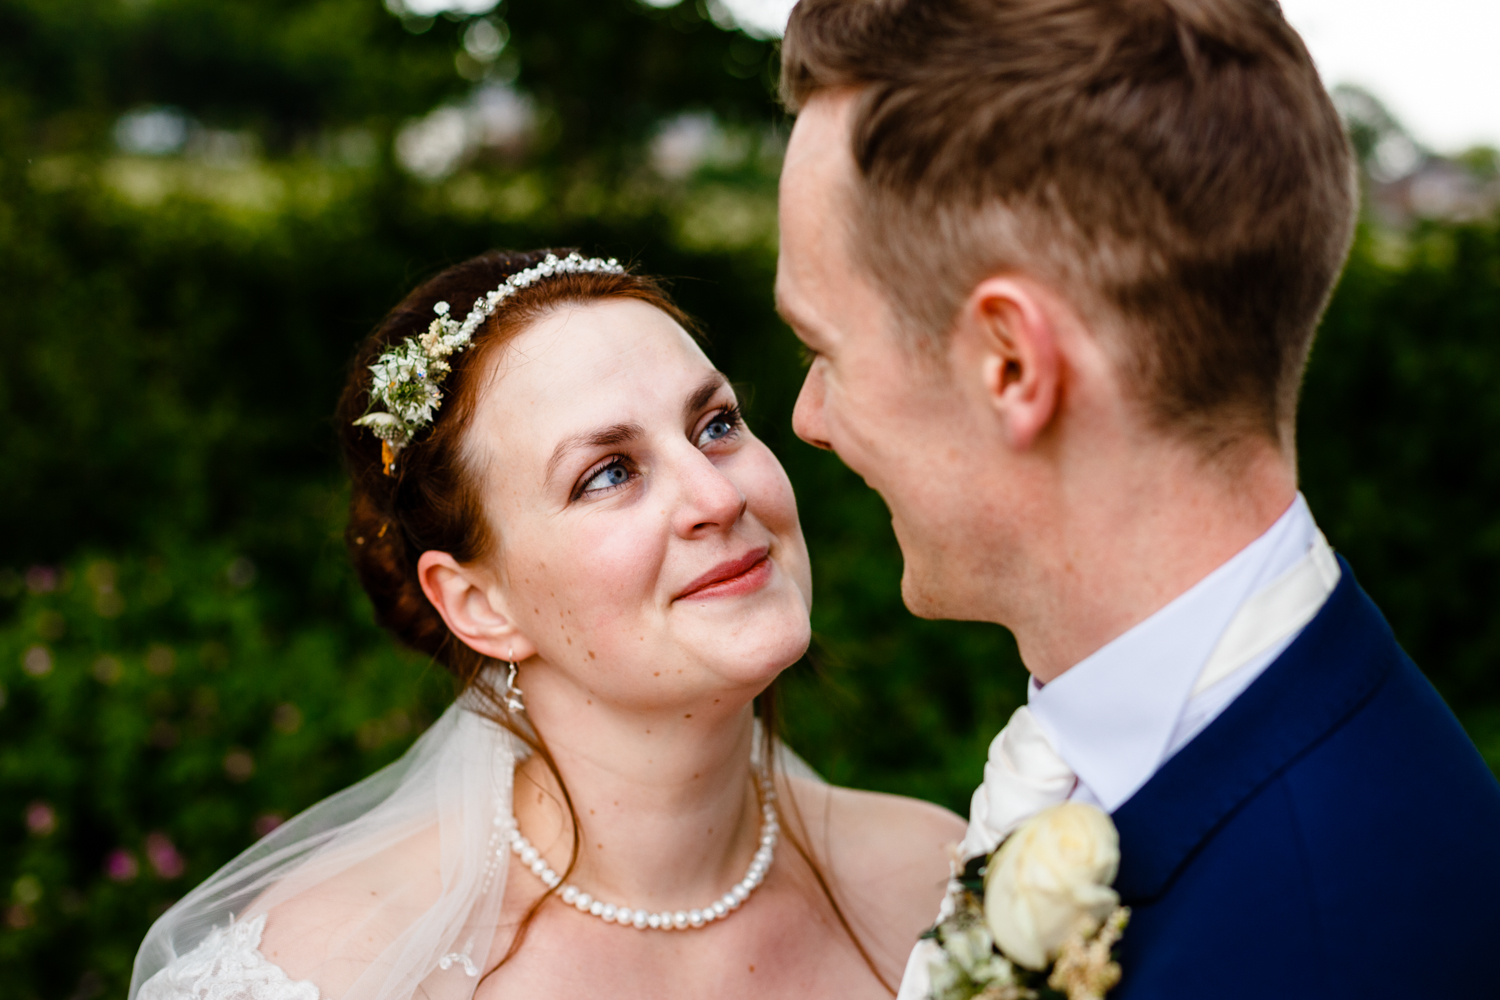 Lancashire-wedding-photographer-adele-and-alex-125.jpg